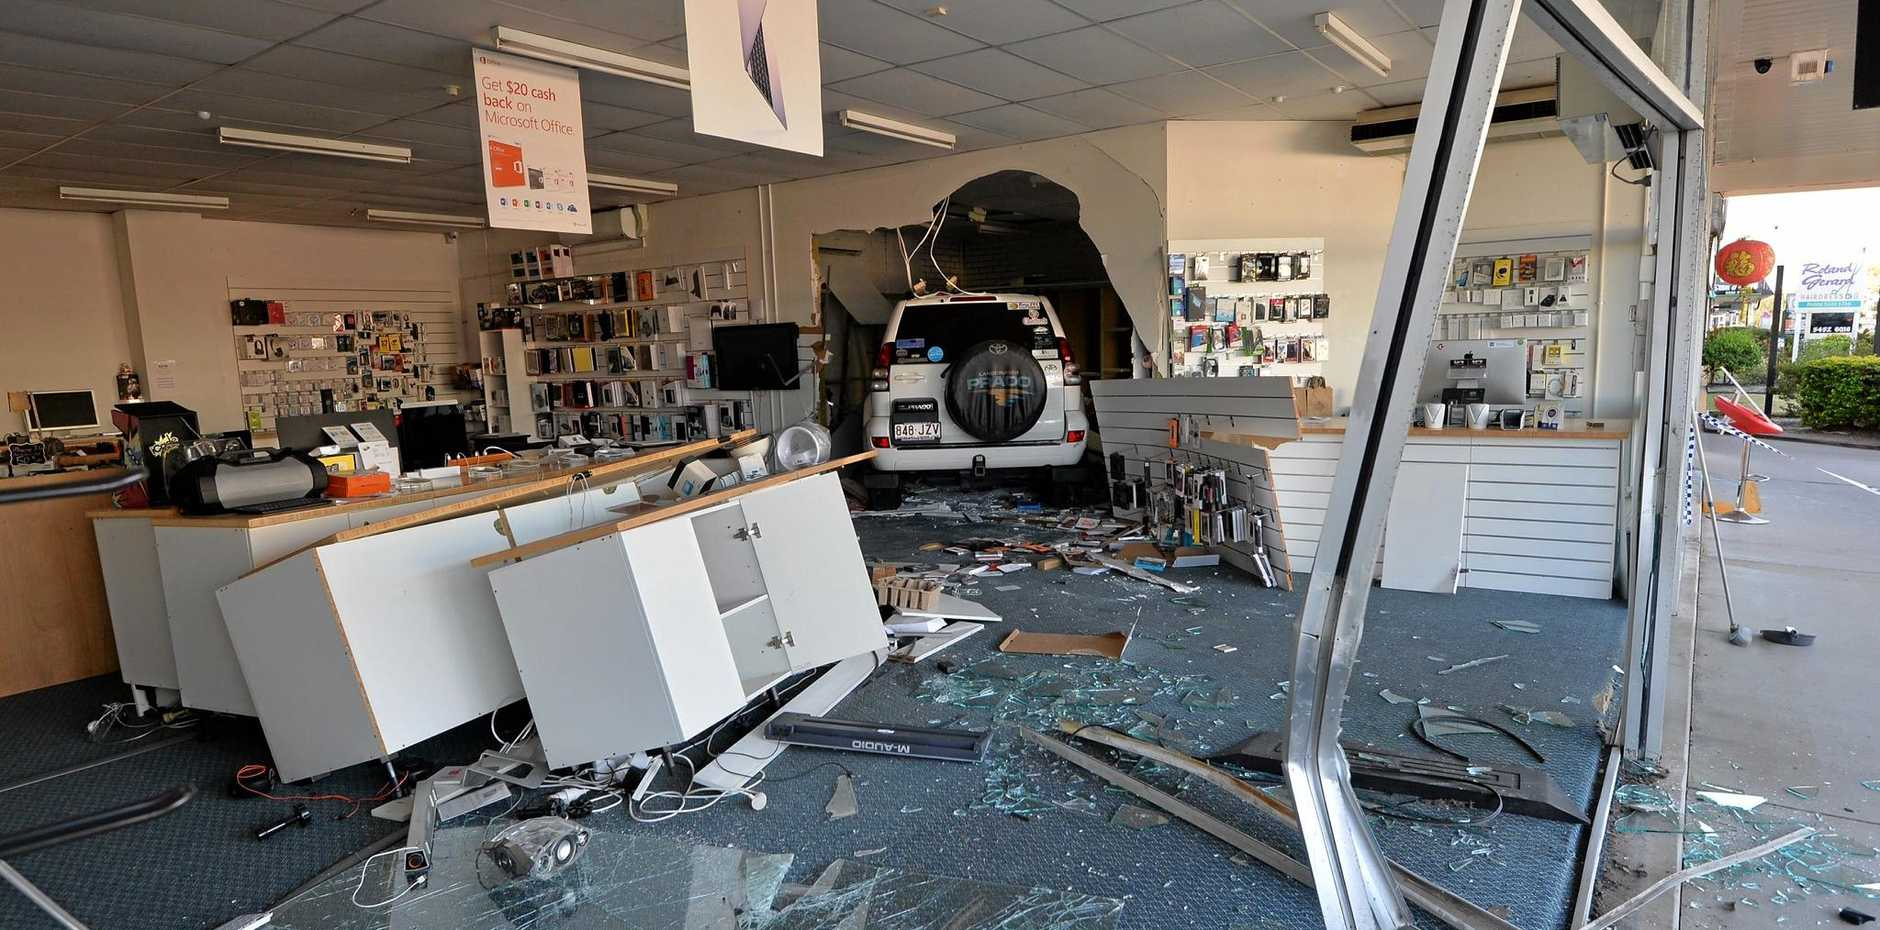 CRASH: Collisions with stationary objects, including buildings, were the most common form of accidents on the Sunshine Coast, according to insurer AAMI.